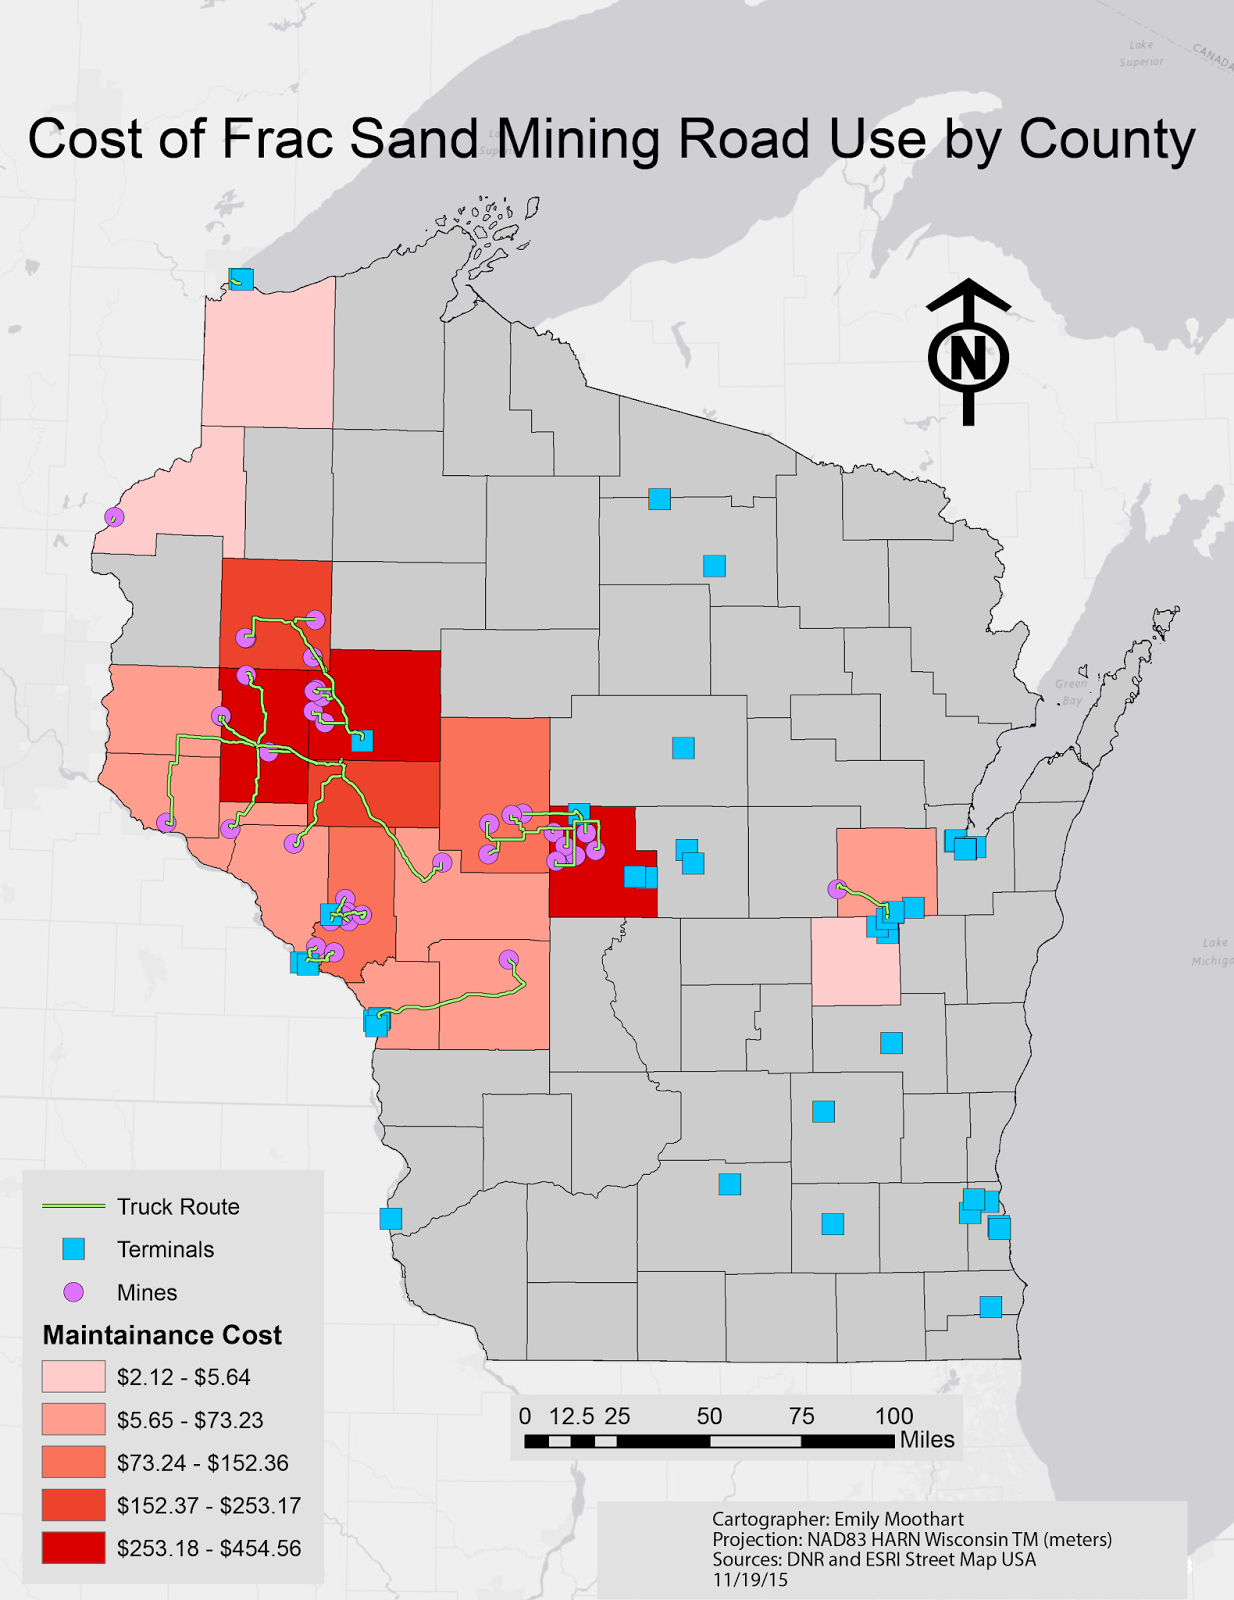 cost analysis map which depicts the cost that is inhibited from trucking sand to market by each county the counties in grey were not calculated for their